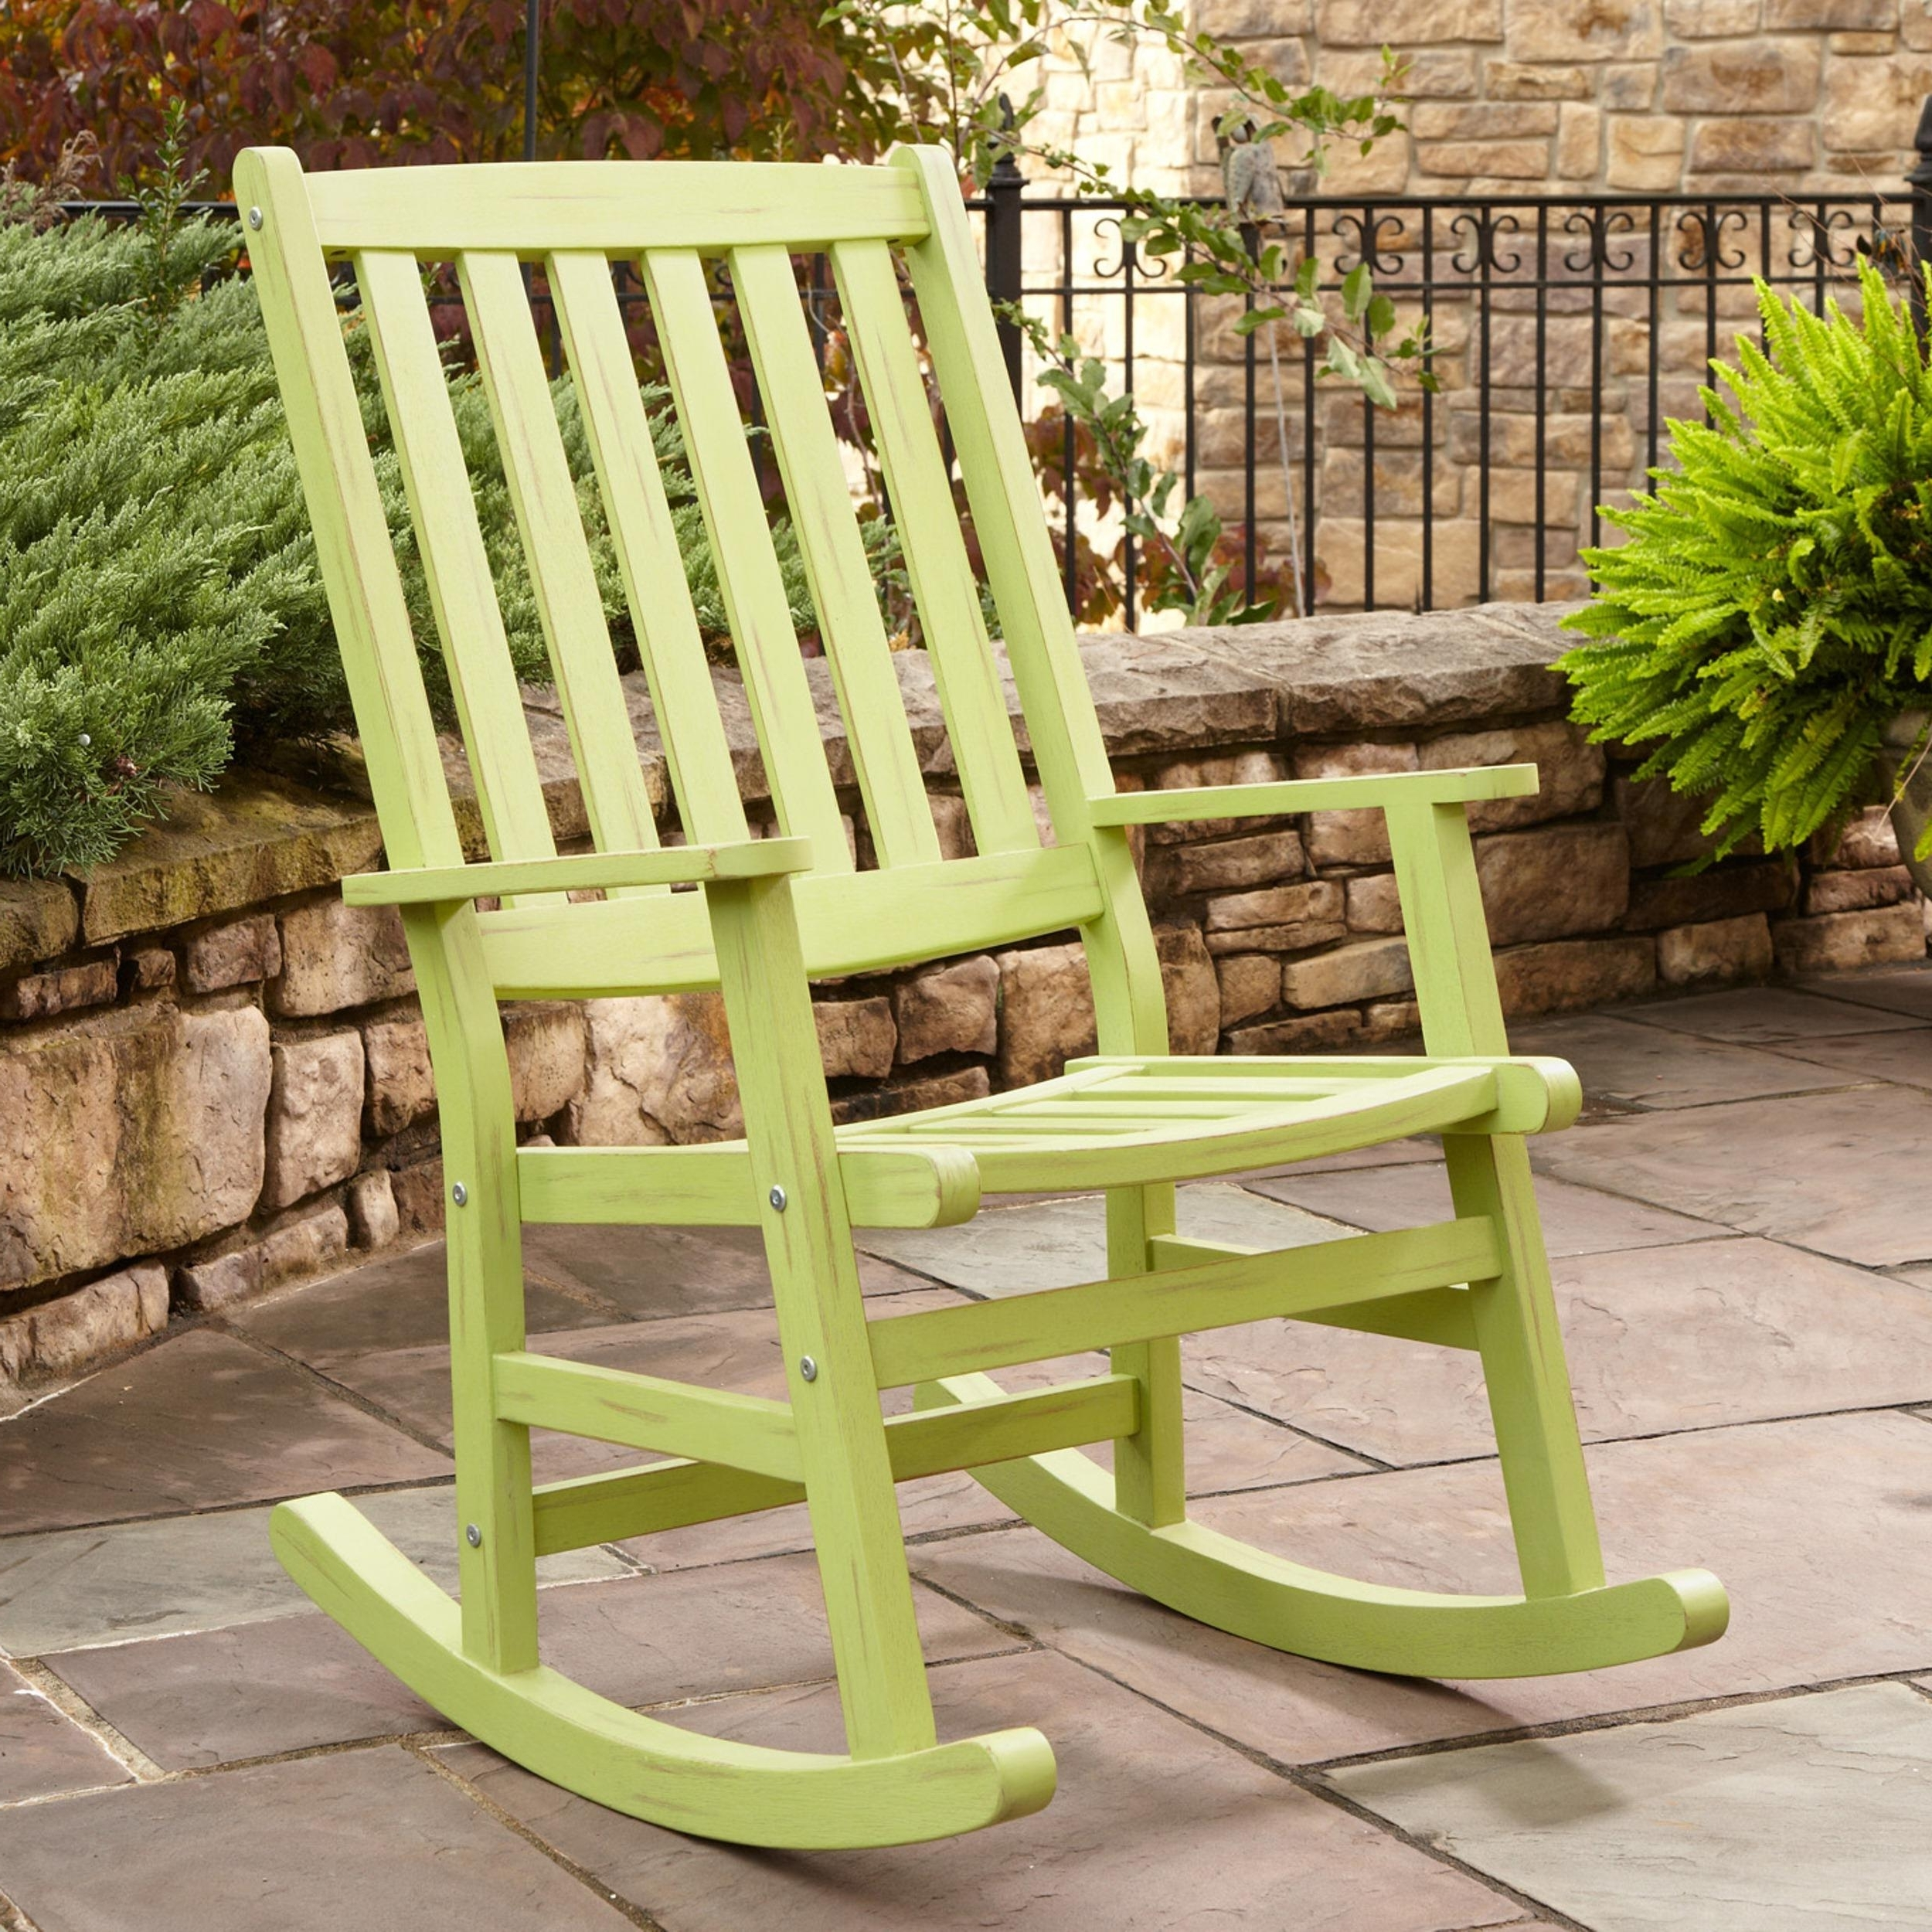 Outdoor Patio Metal Rocking Chairs Pertaining To 2019 Livingroom : Patio Dining Sets With Rocking Chairs Lowes Wicker (View 20 of 20)